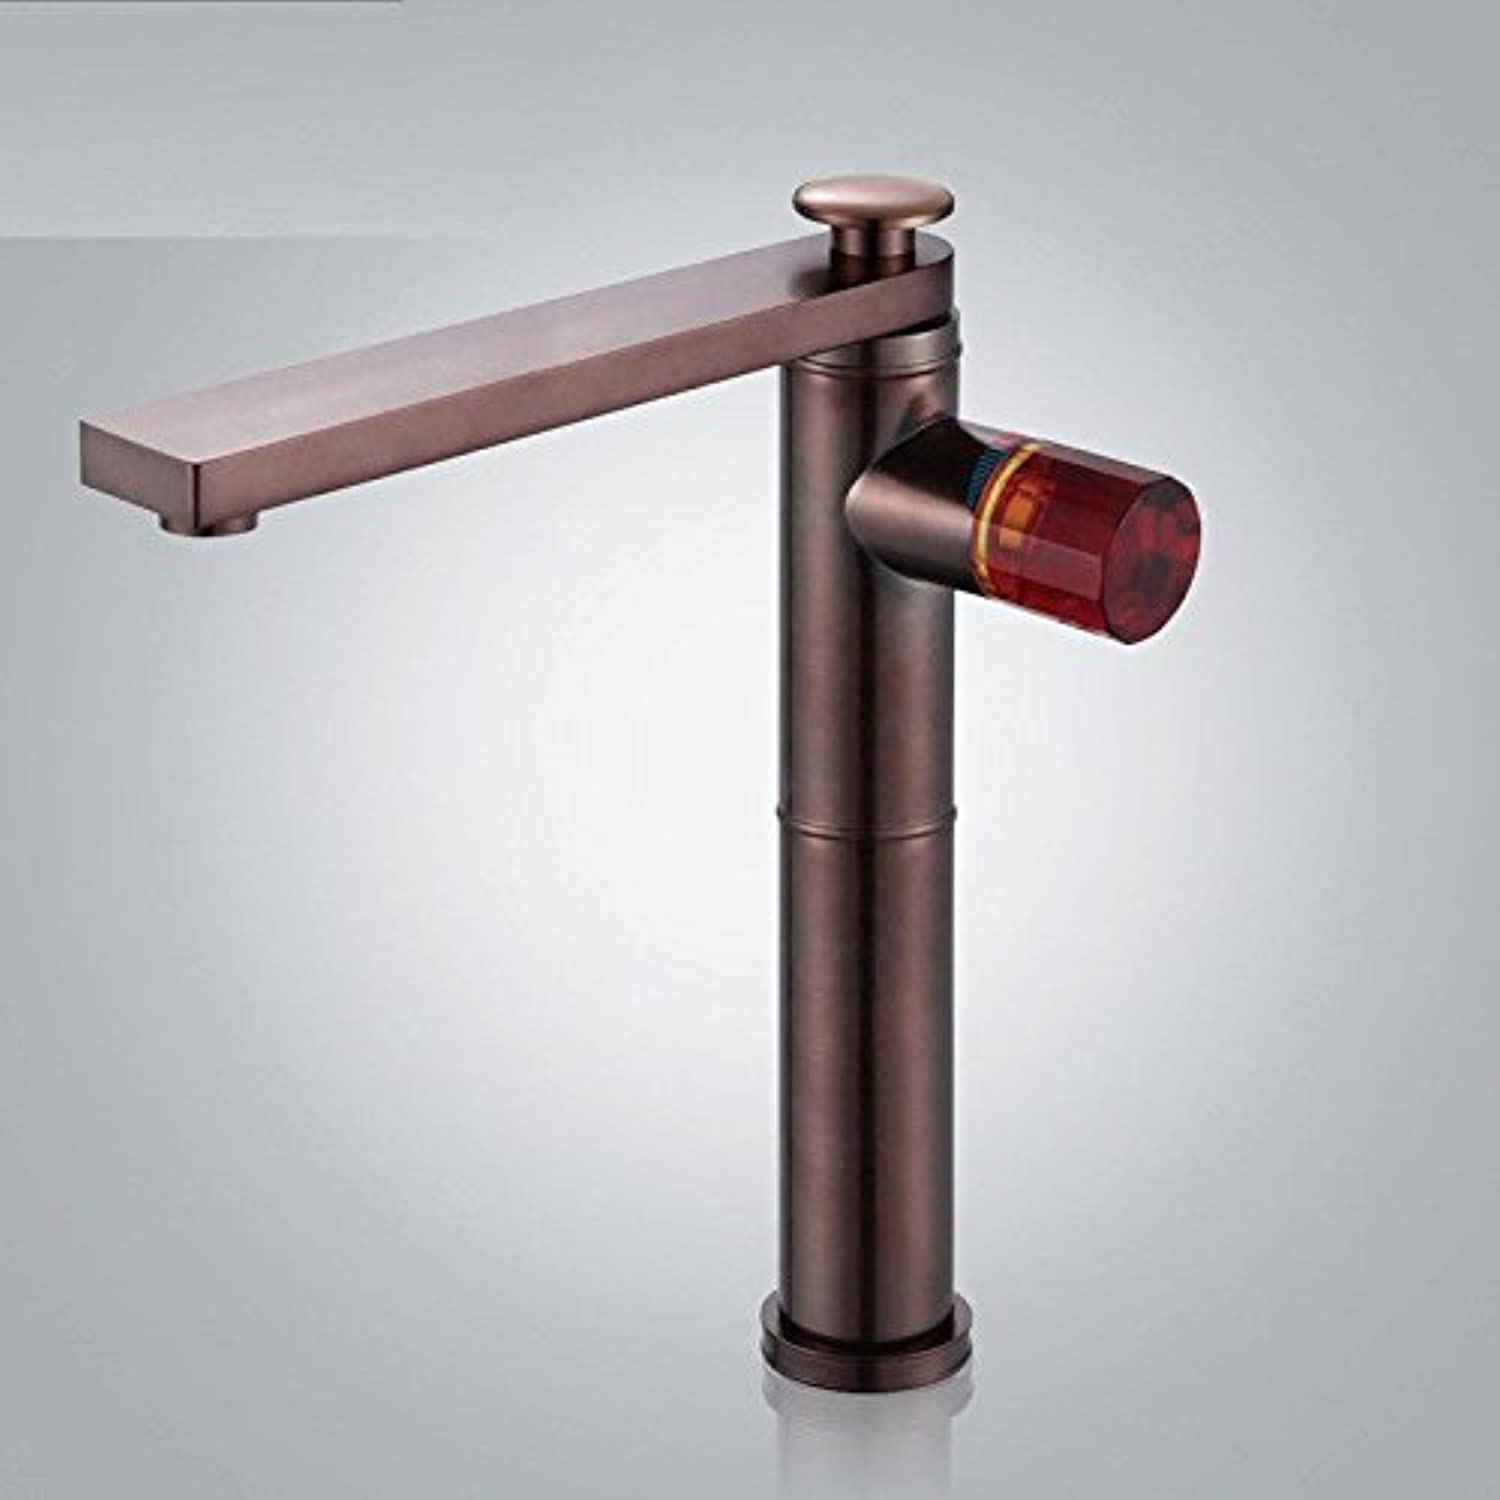 Commercial Bathroom Sink Taps Lpophy Bathroom Sink Mixer Taps Faucet Bath Waterfall Cold and Hot Water Tap for Washroom Bathroom and Kitchen Antique Copper Heightening Rotating Hot and Cold Restroom Fixtures